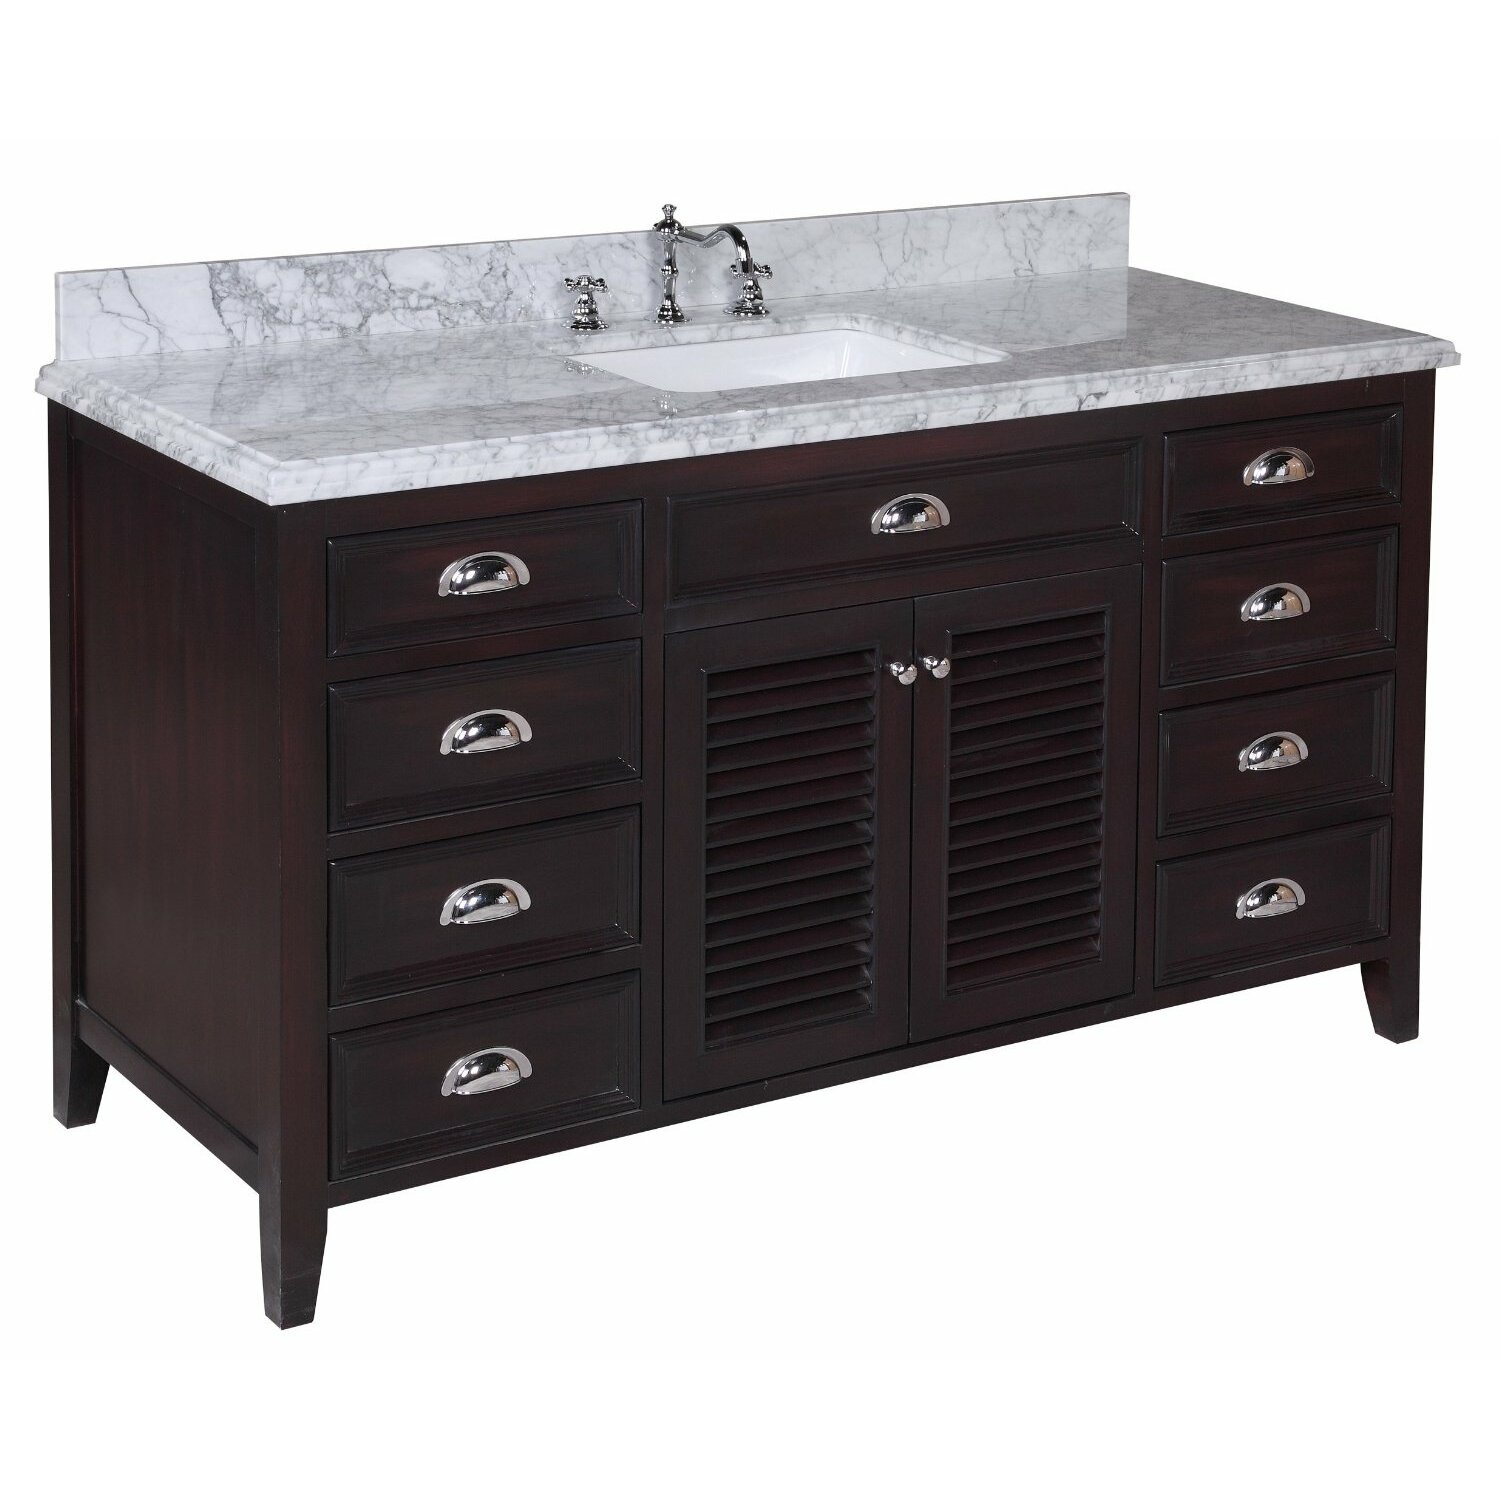 Kbc savannah 60 single bathroom vanity set reviews for Bath and vanity set